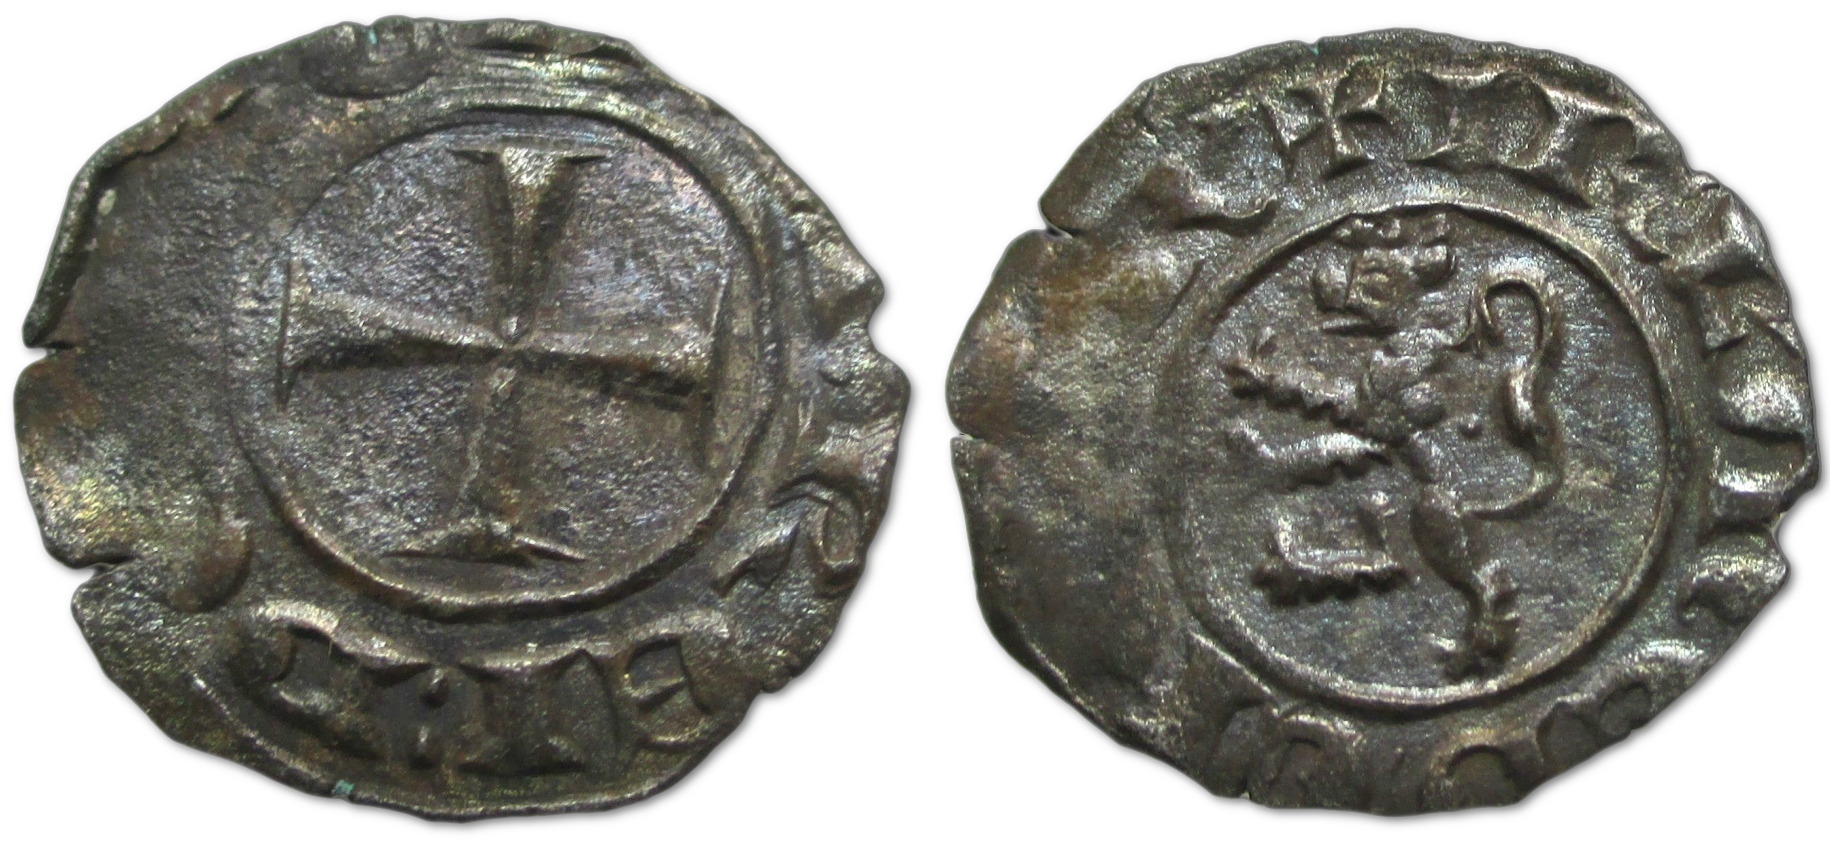 /Files/Images/Coinsite/CoinDB/HenryII(0).jpg